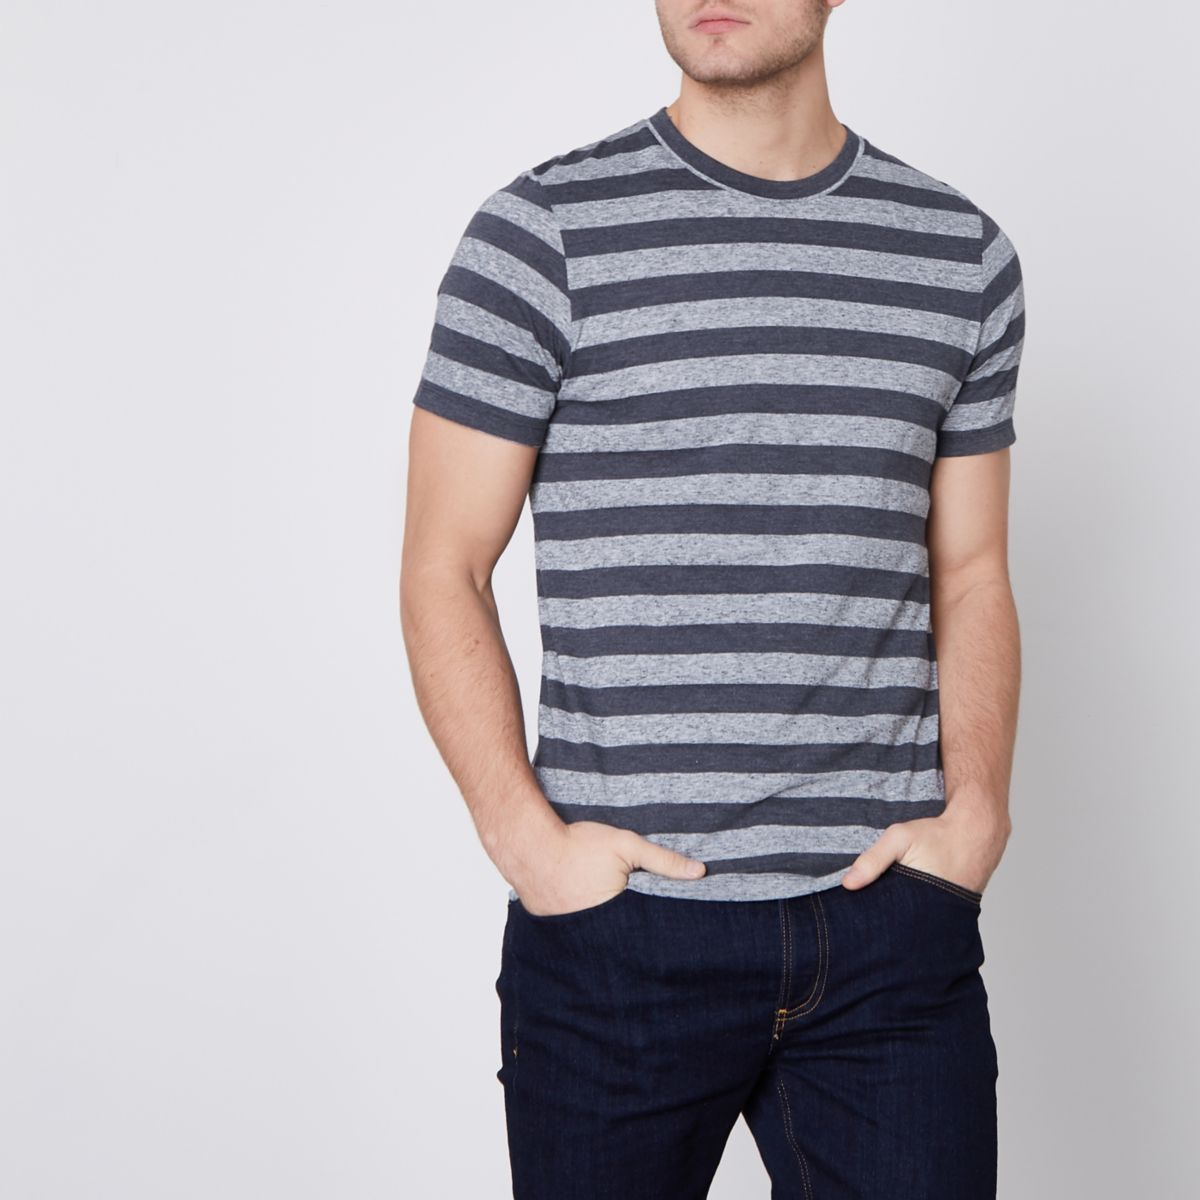 Jack & Jones Premium navy stripe T-shirt